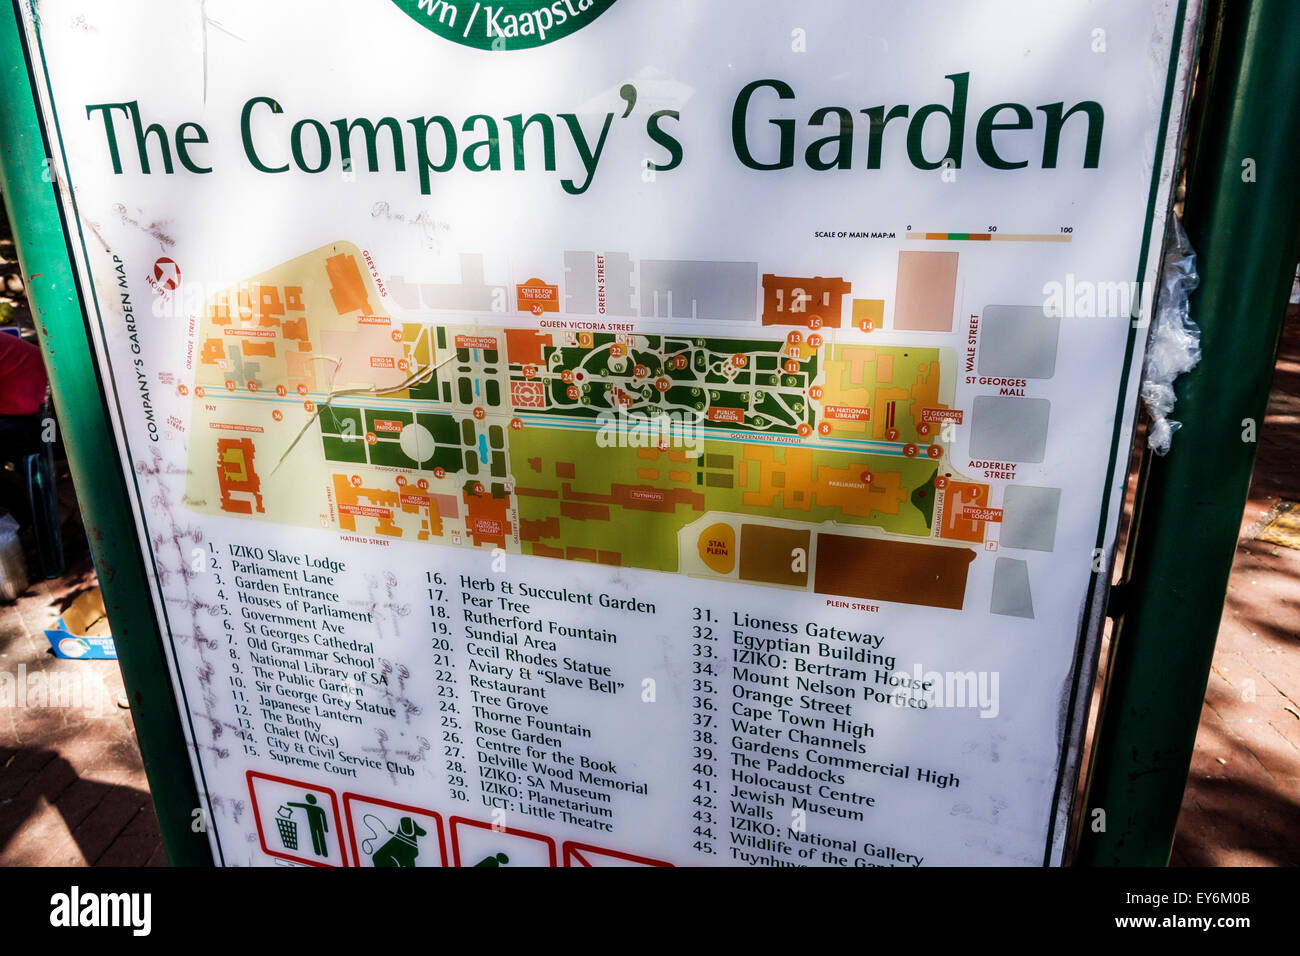 Cape Town South Africa African City Centre center Government Avenue The Company's Garden sign information public - Stock Image